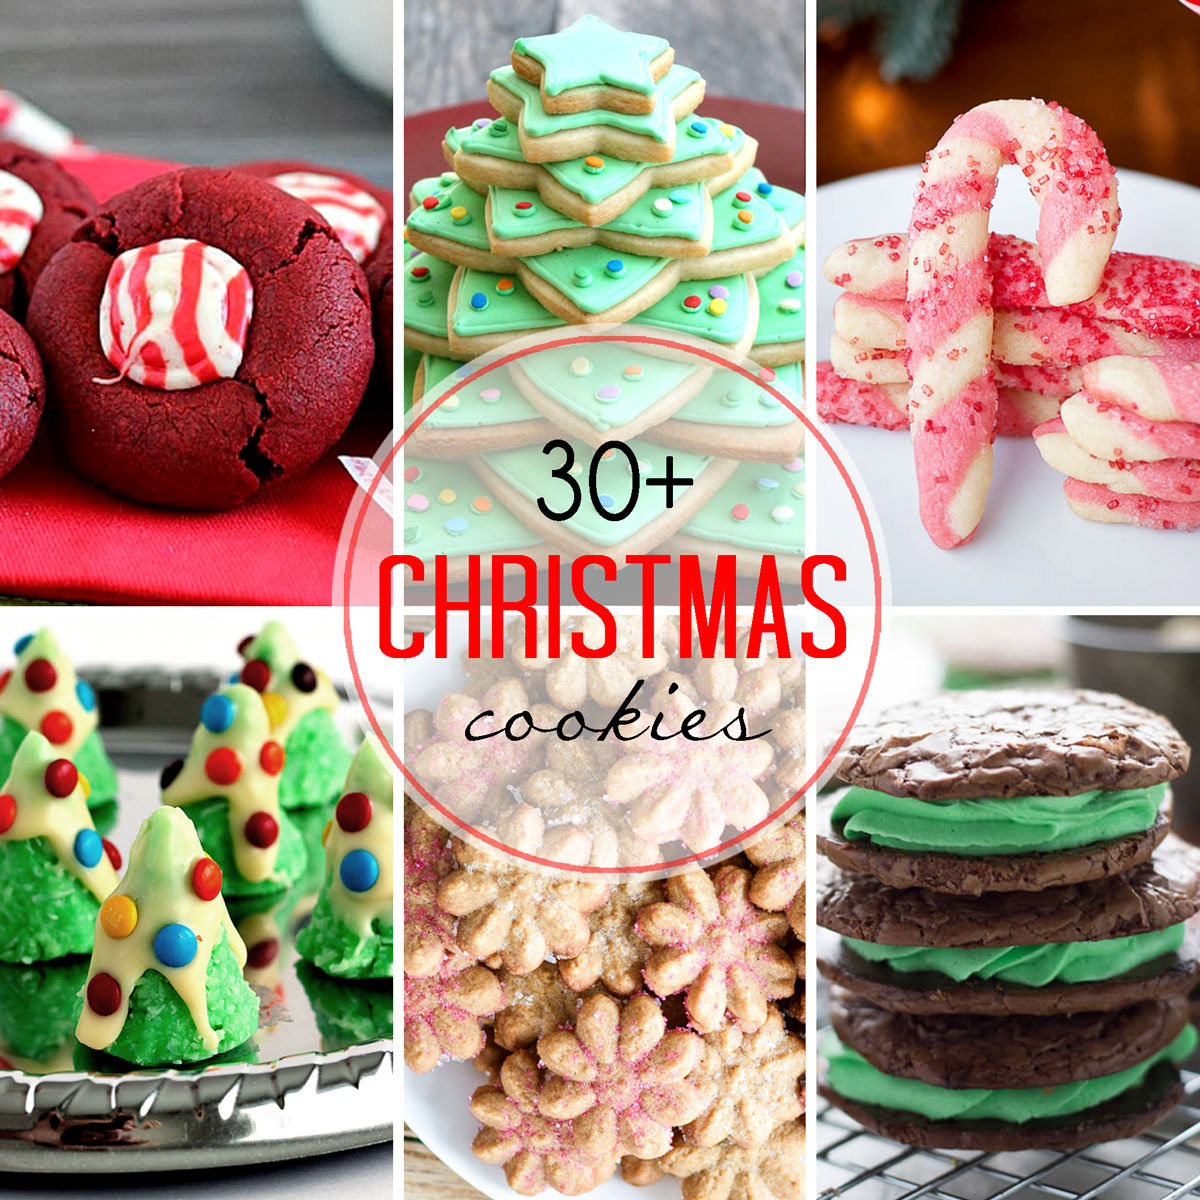 30+ Christmas Cookies Recipes for the Holidays | Cravings of a Lunatic